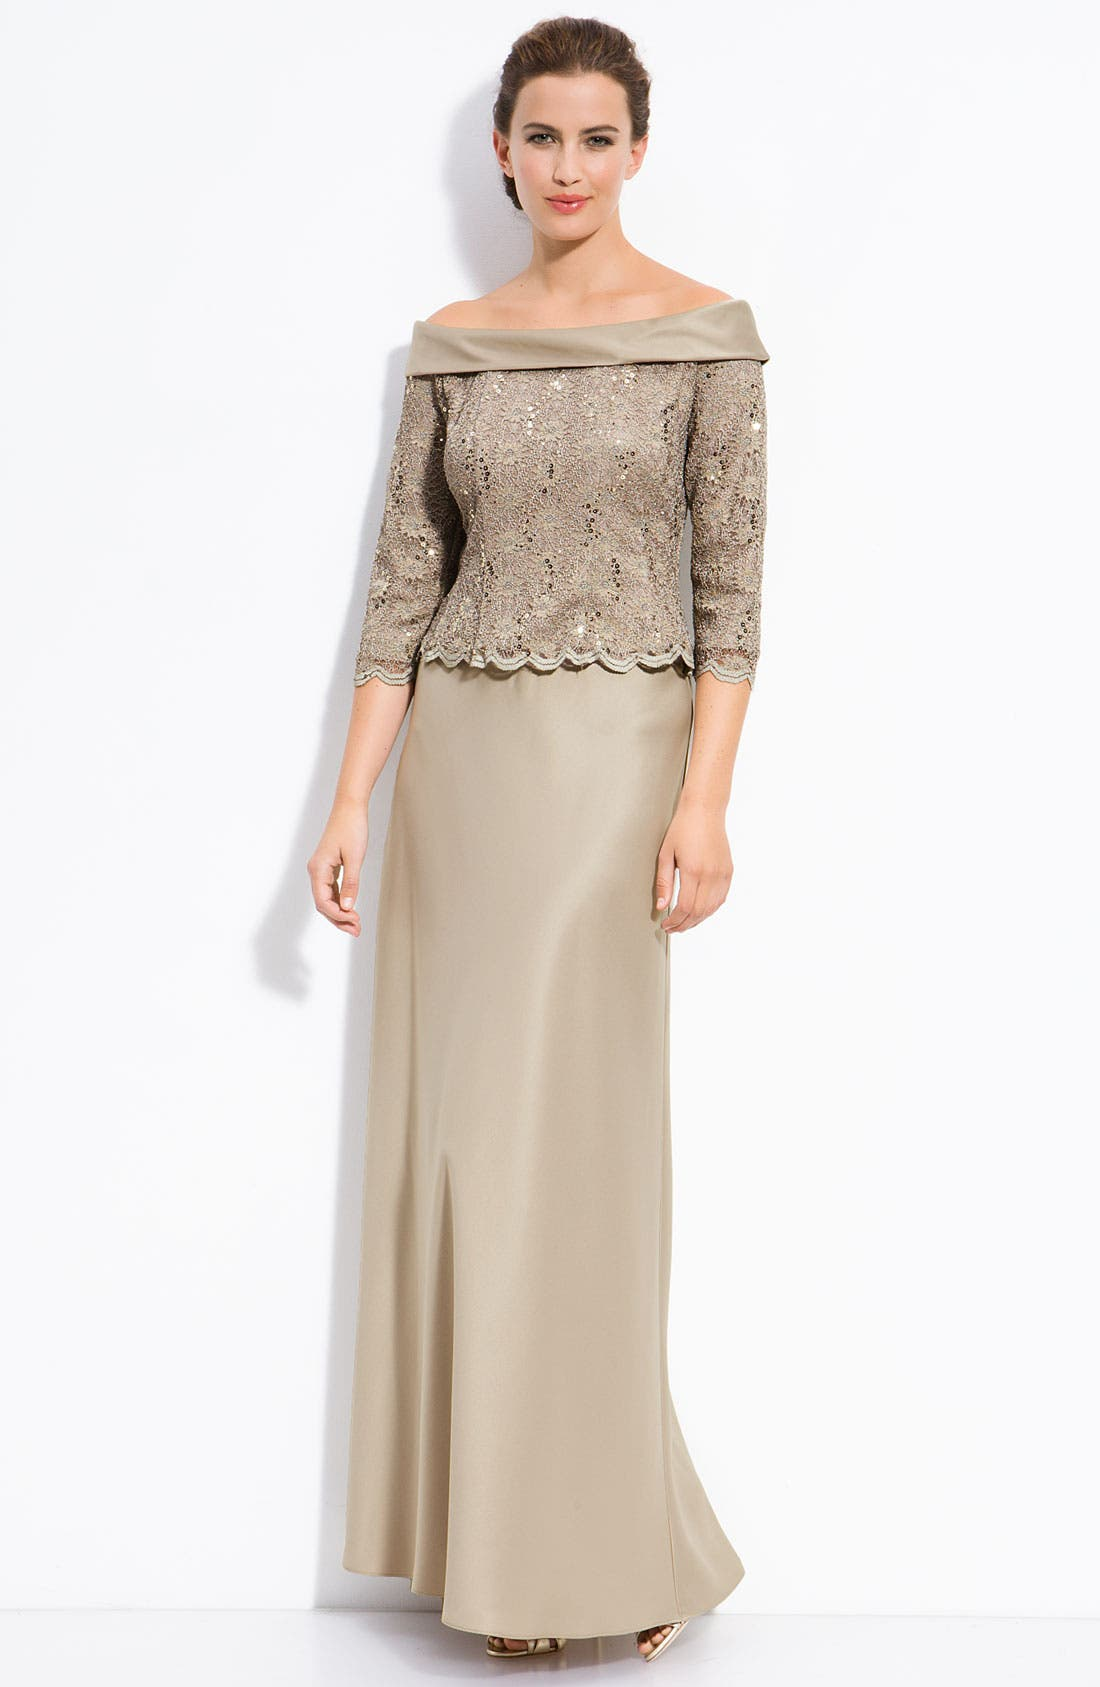 Alternate Image 1 Selected - Alex Evenings Off the Shoulder Lace Top with Satin Skirt